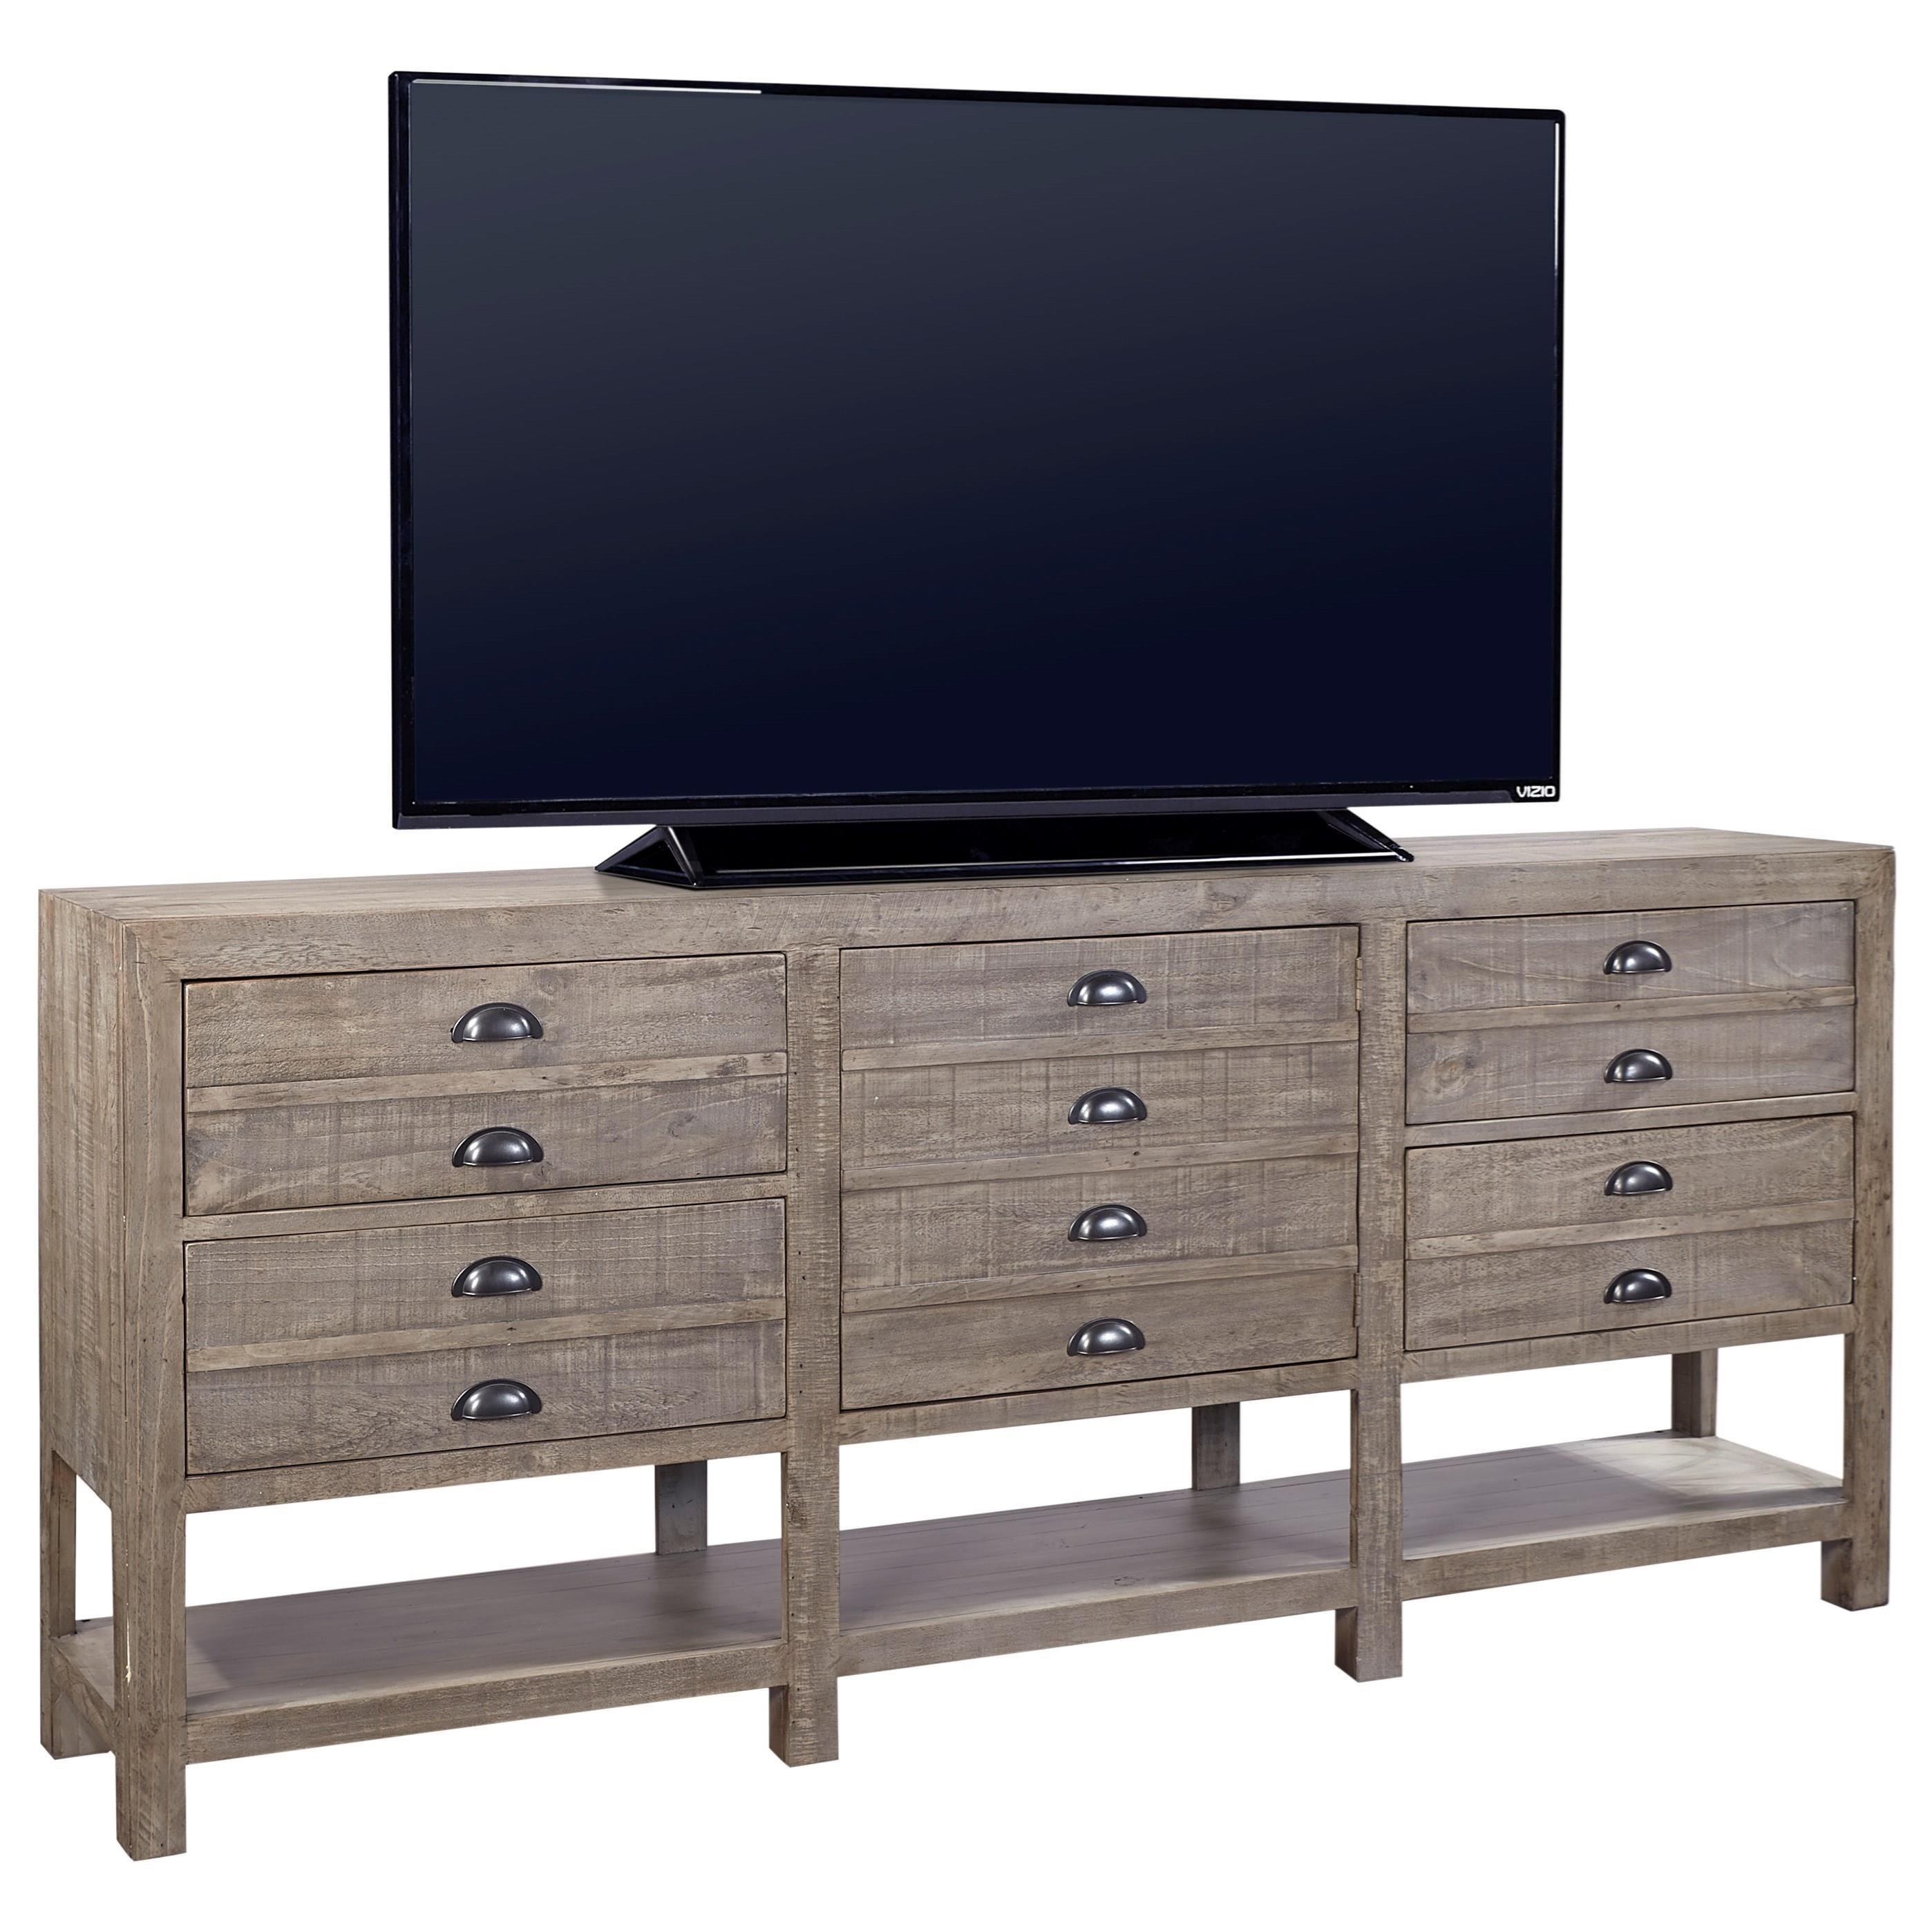 "Aspenhome Printworks 93"" Console  - Item Number: I54-293-OYS"